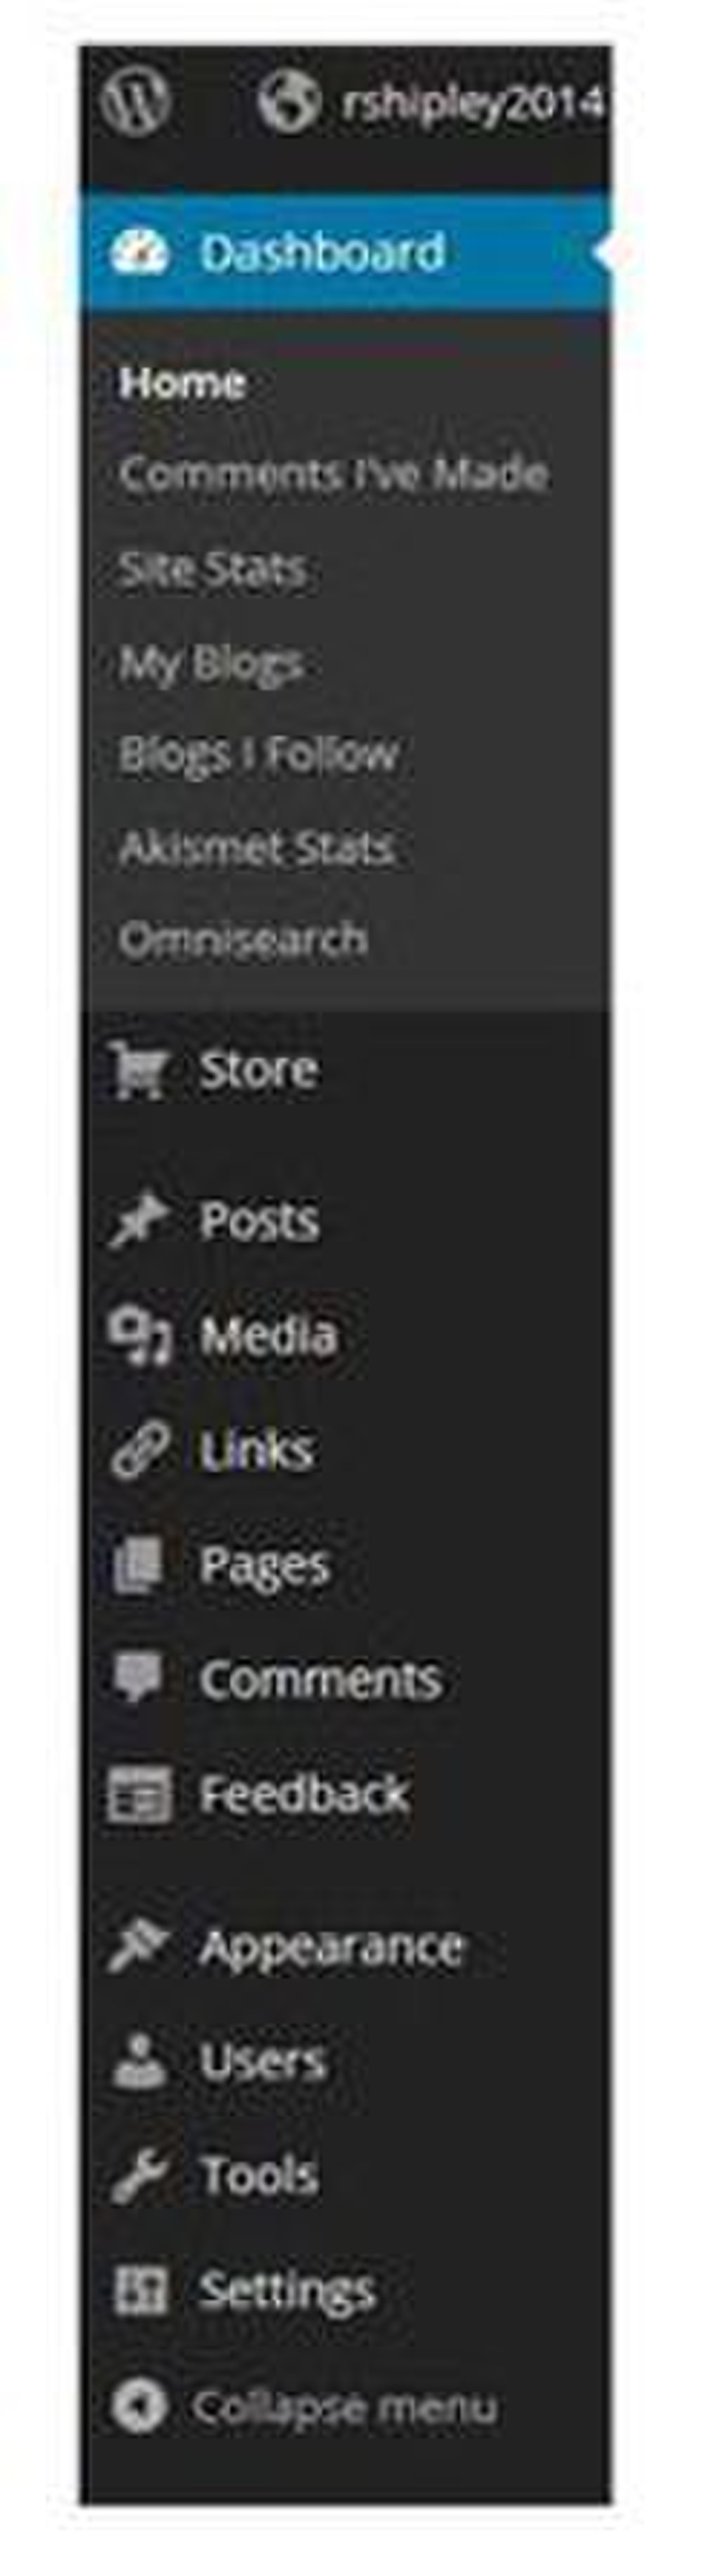 WordPress image: The dashboard tabs make it easy to access all the features.